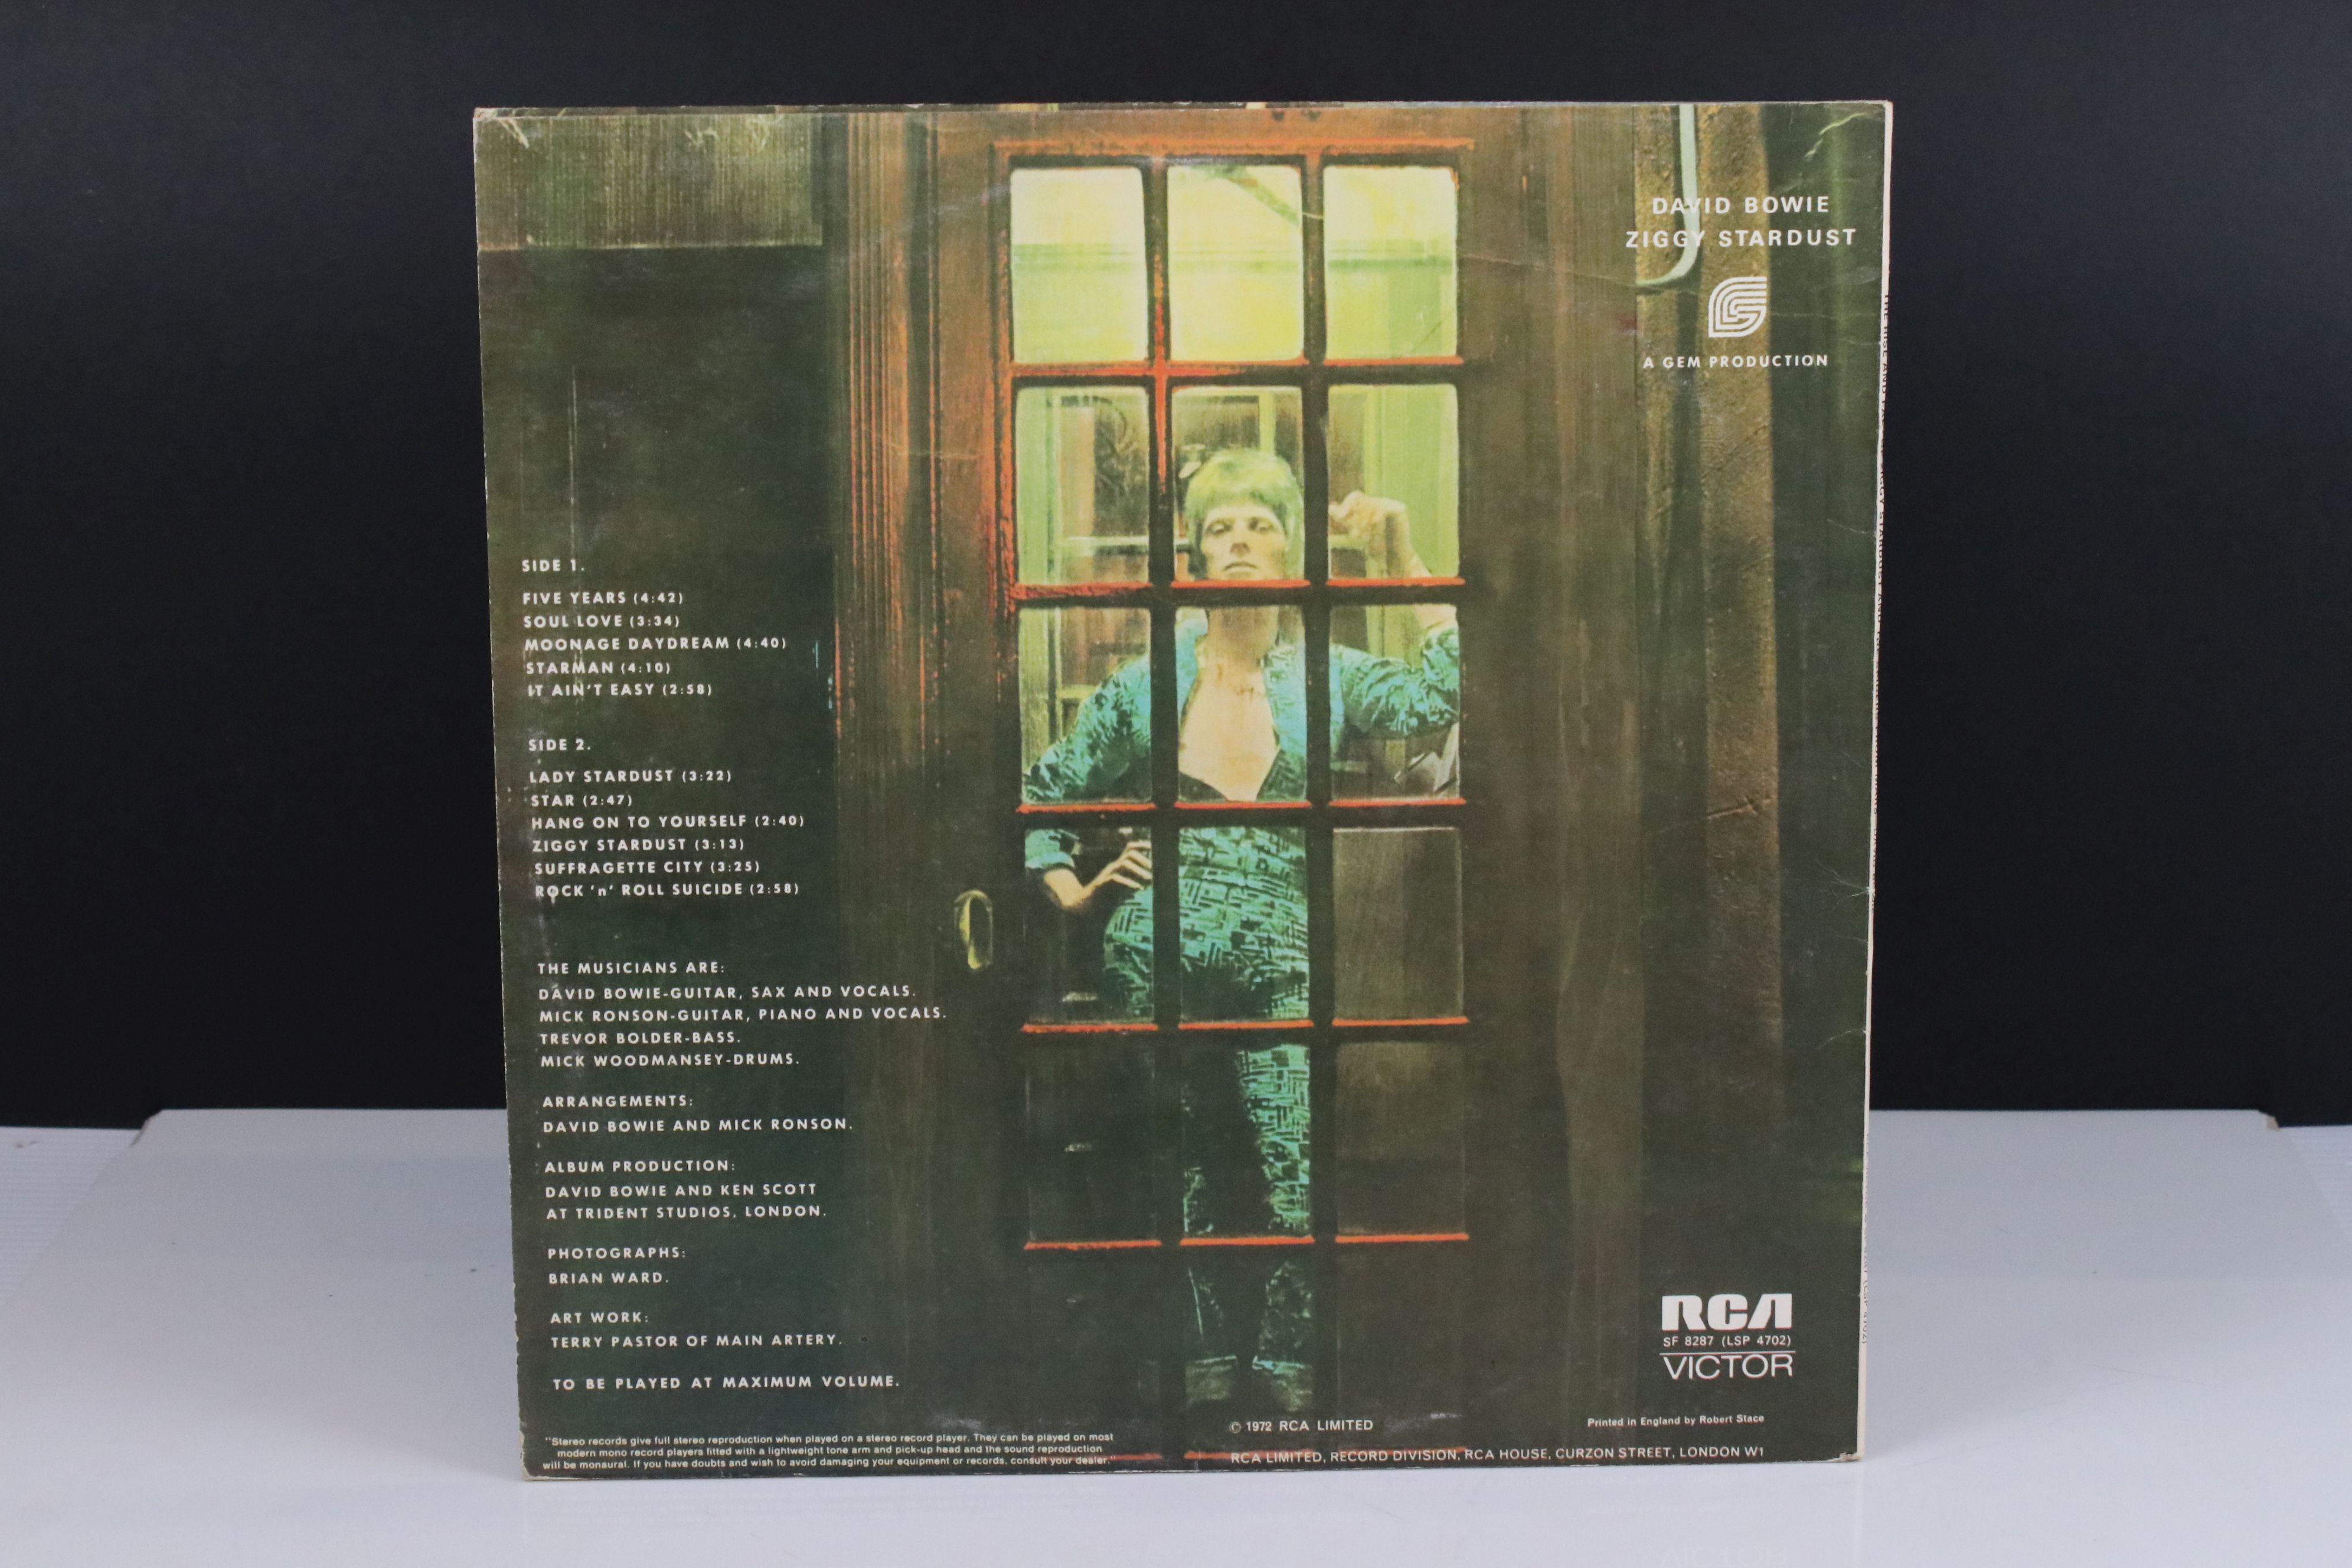 Vinyl - David Bowie The Rise and Fall of Ziggy Stardust LP on RCA8287, shiny orange RCA label, - Image 7 of 7